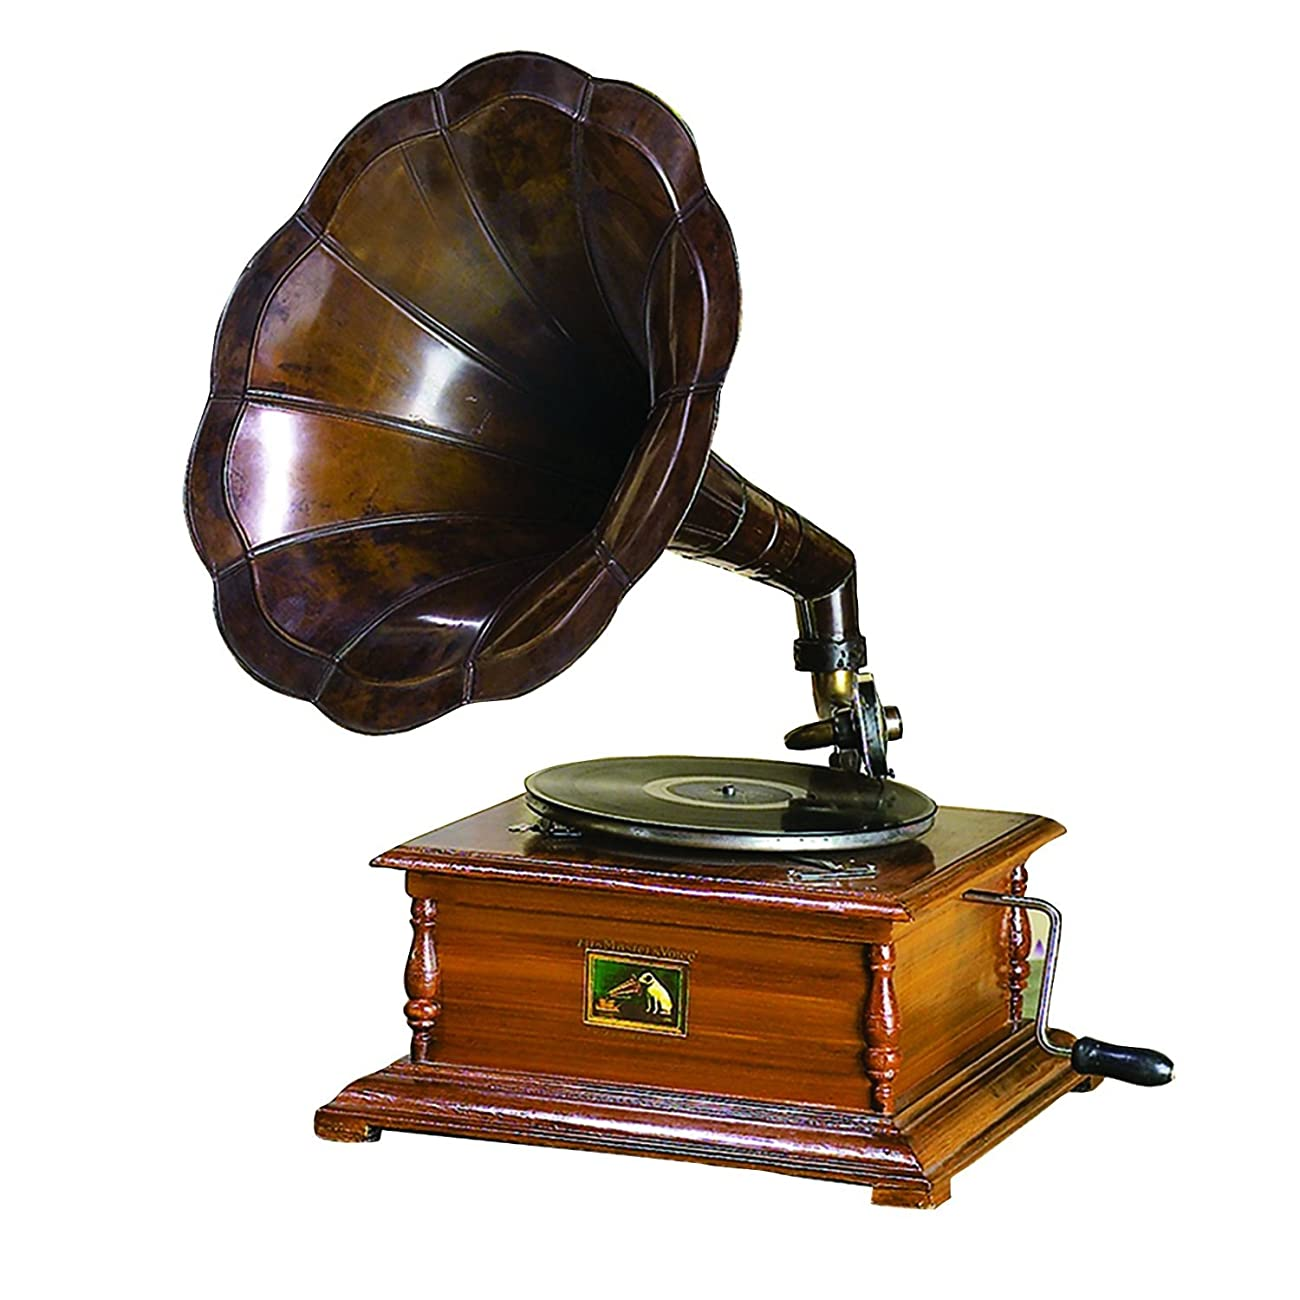 WinnerBrown Home Décor Metal Wood Brass Antique Finish Gramophone Record Player, 27 inch 0